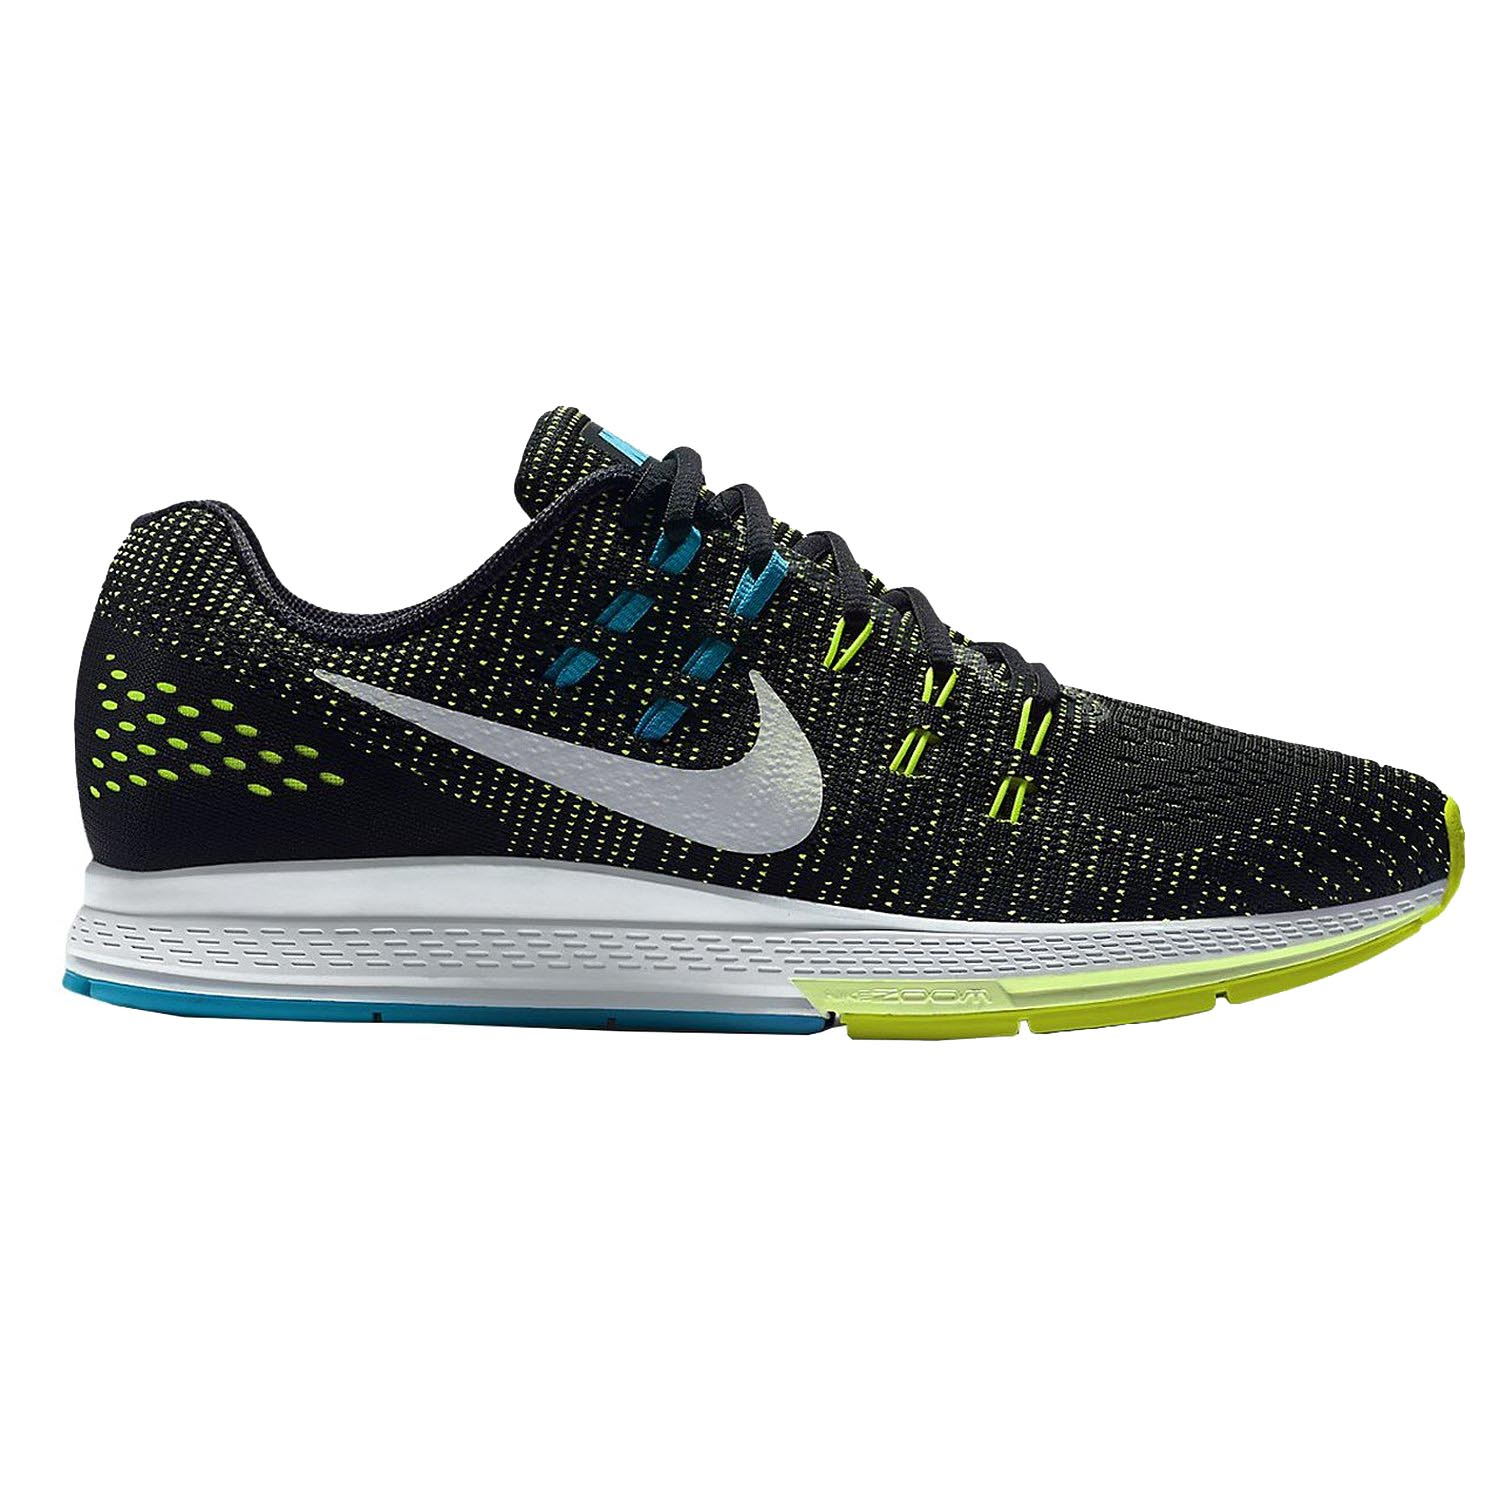 nike zoom structure 13 wide